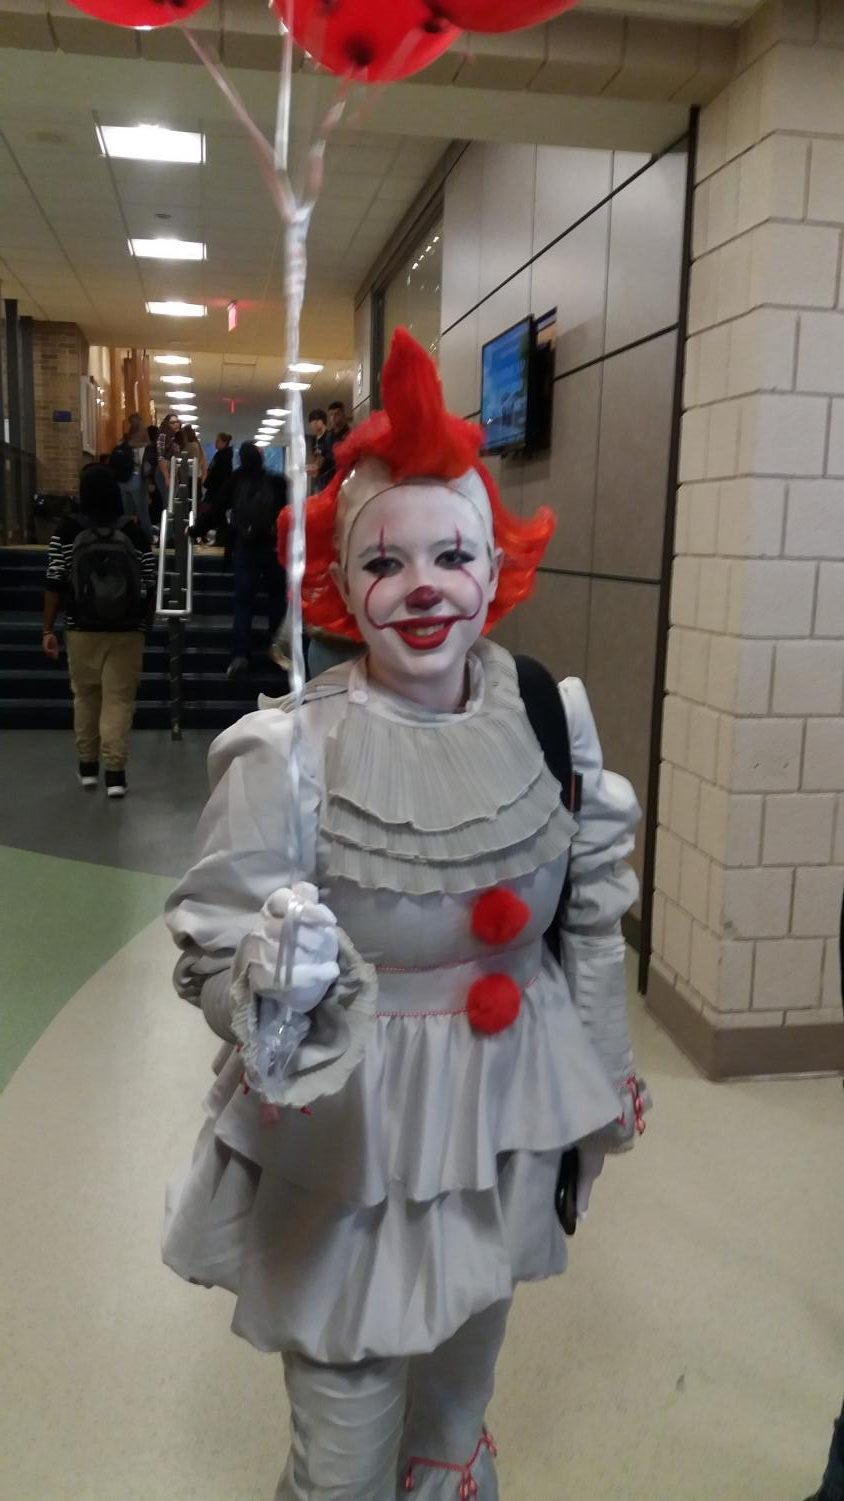 Senior Cassidy Harty dressed up as Pennywise the Clown